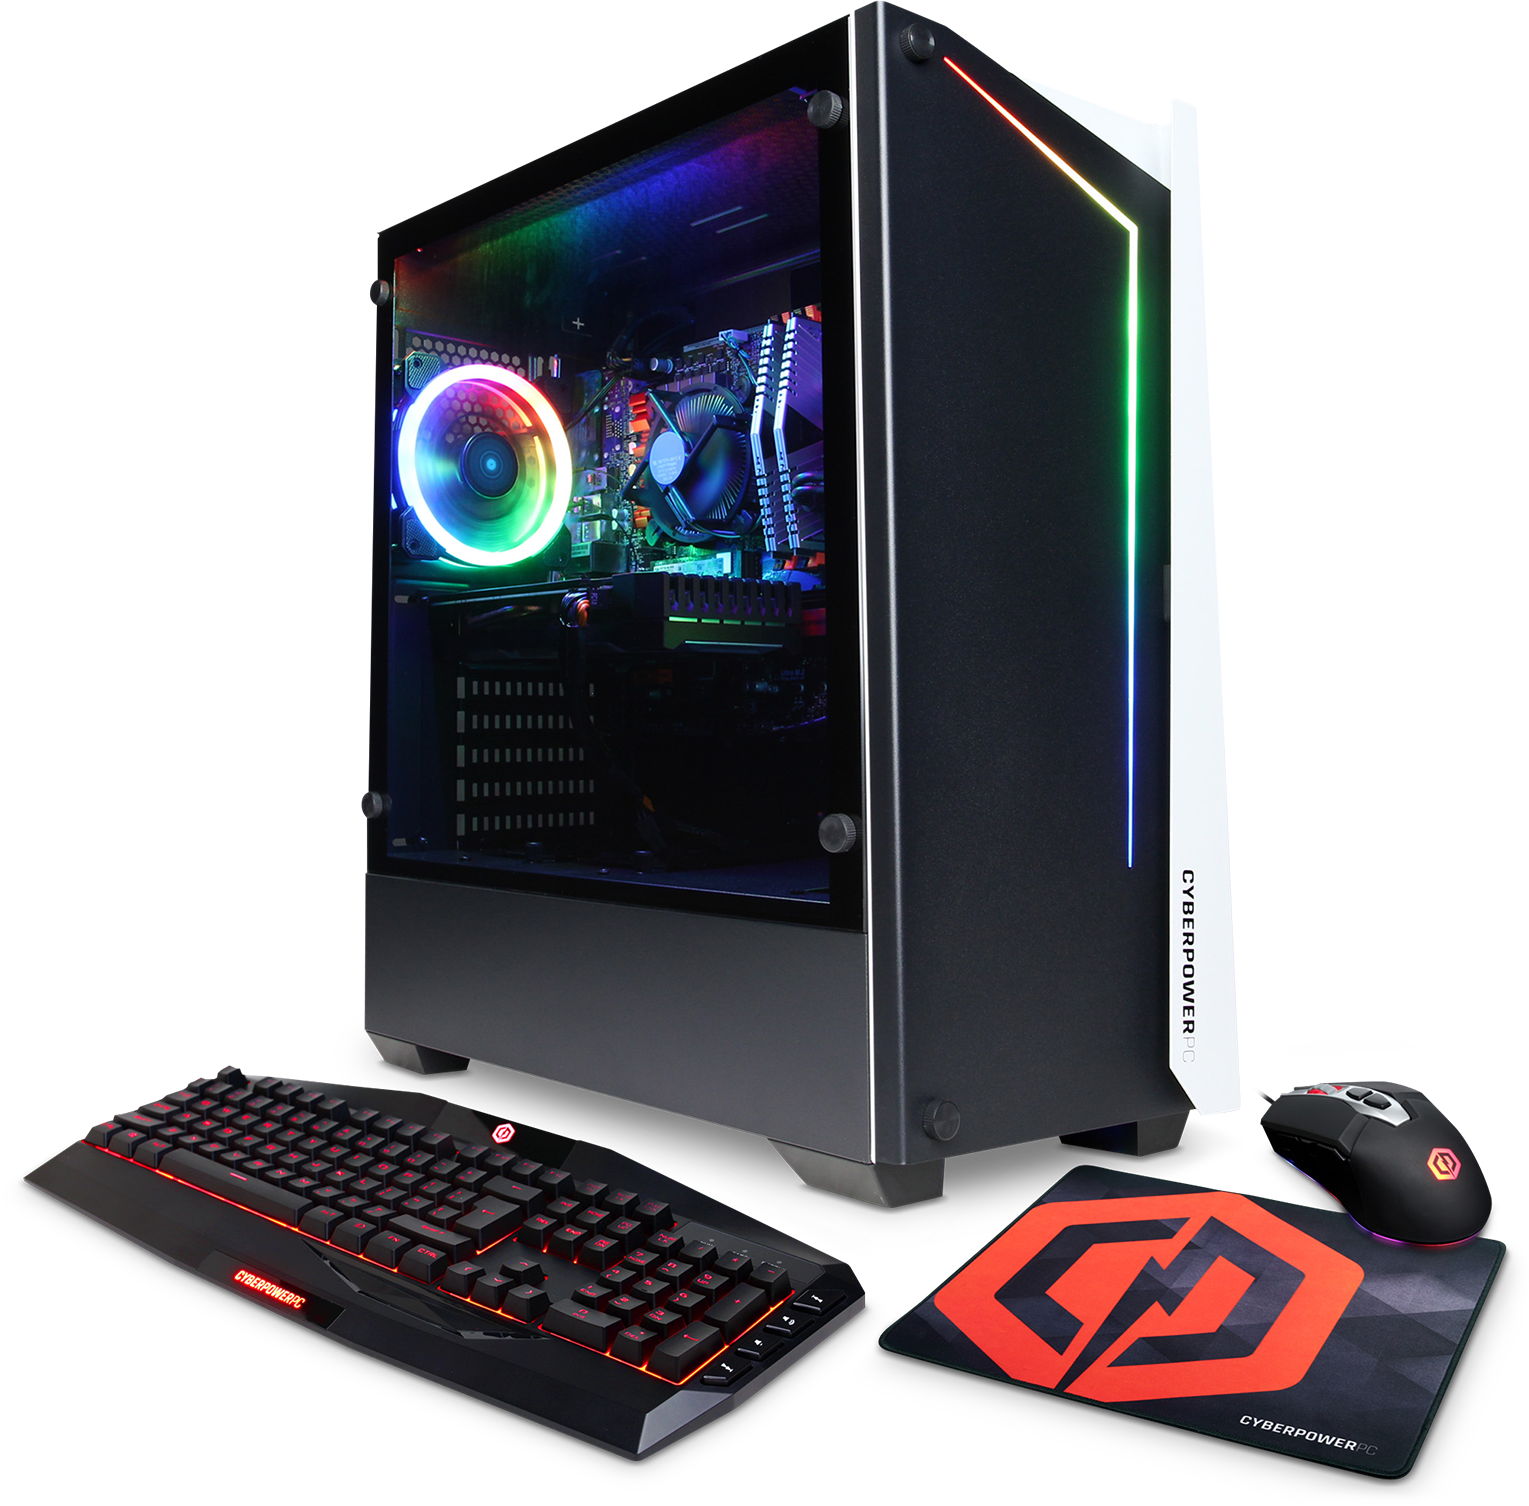 RE30fYF?ver=a0e3 - CyberPowerPC Gamer Xtreme MSAAG1000 Gaming PC